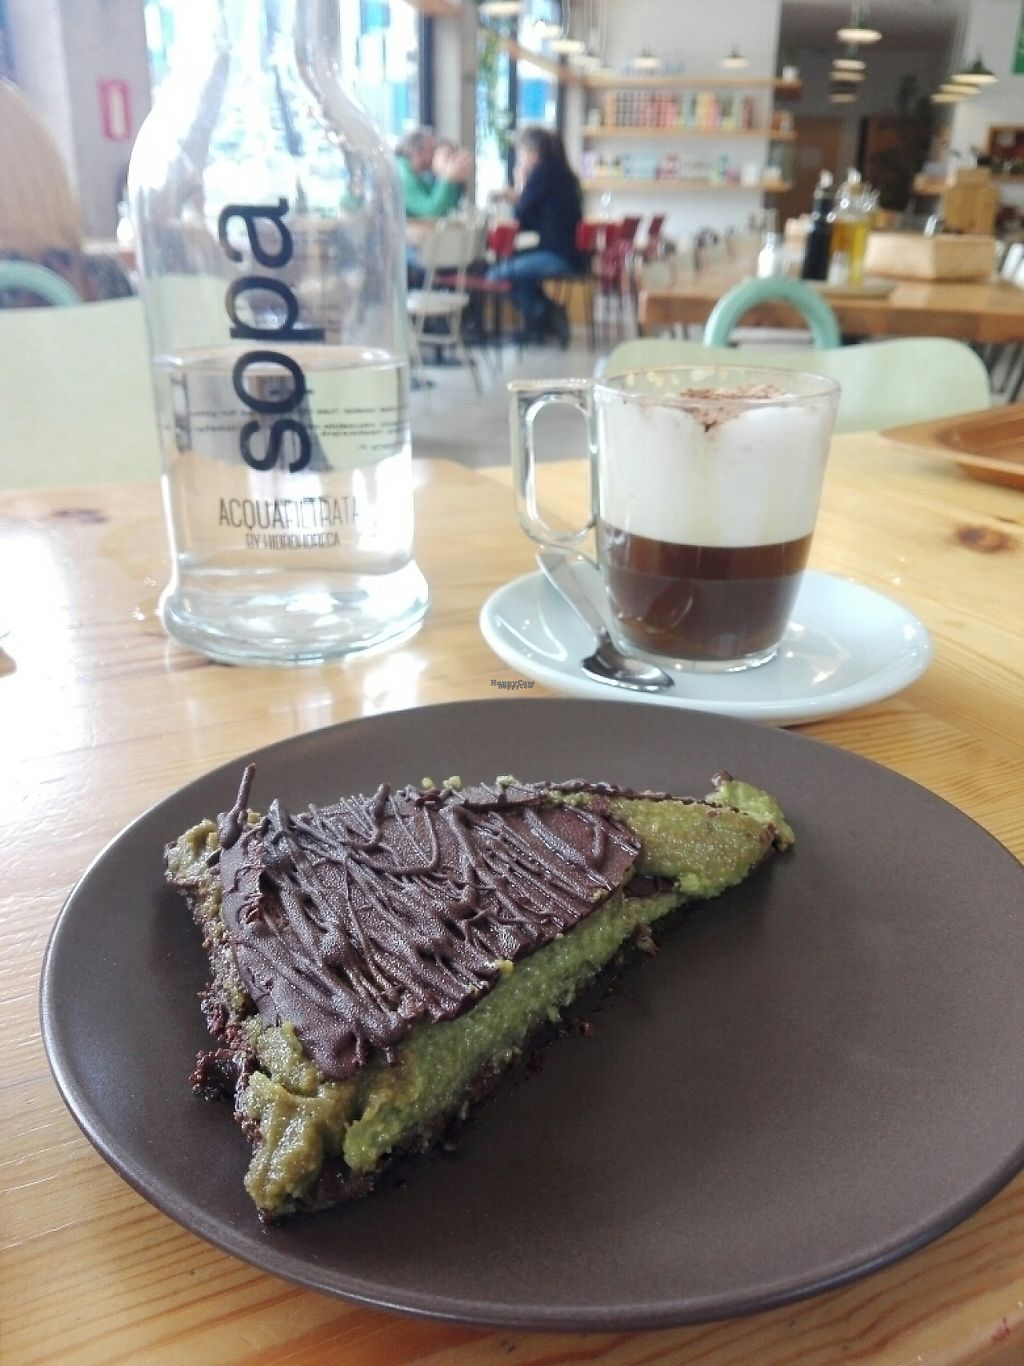 """Photo of Sopa - Boronat  by <a href=""""/members/profile/Pteri"""">Pteri</a> <br/>Great vegan and sugar free cake (matcha and banana with a chia base) and chicory cappuccino <br/> April 30, 2017  - <a href='/contact/abuse/image/41858/254179'>Report</a>"""